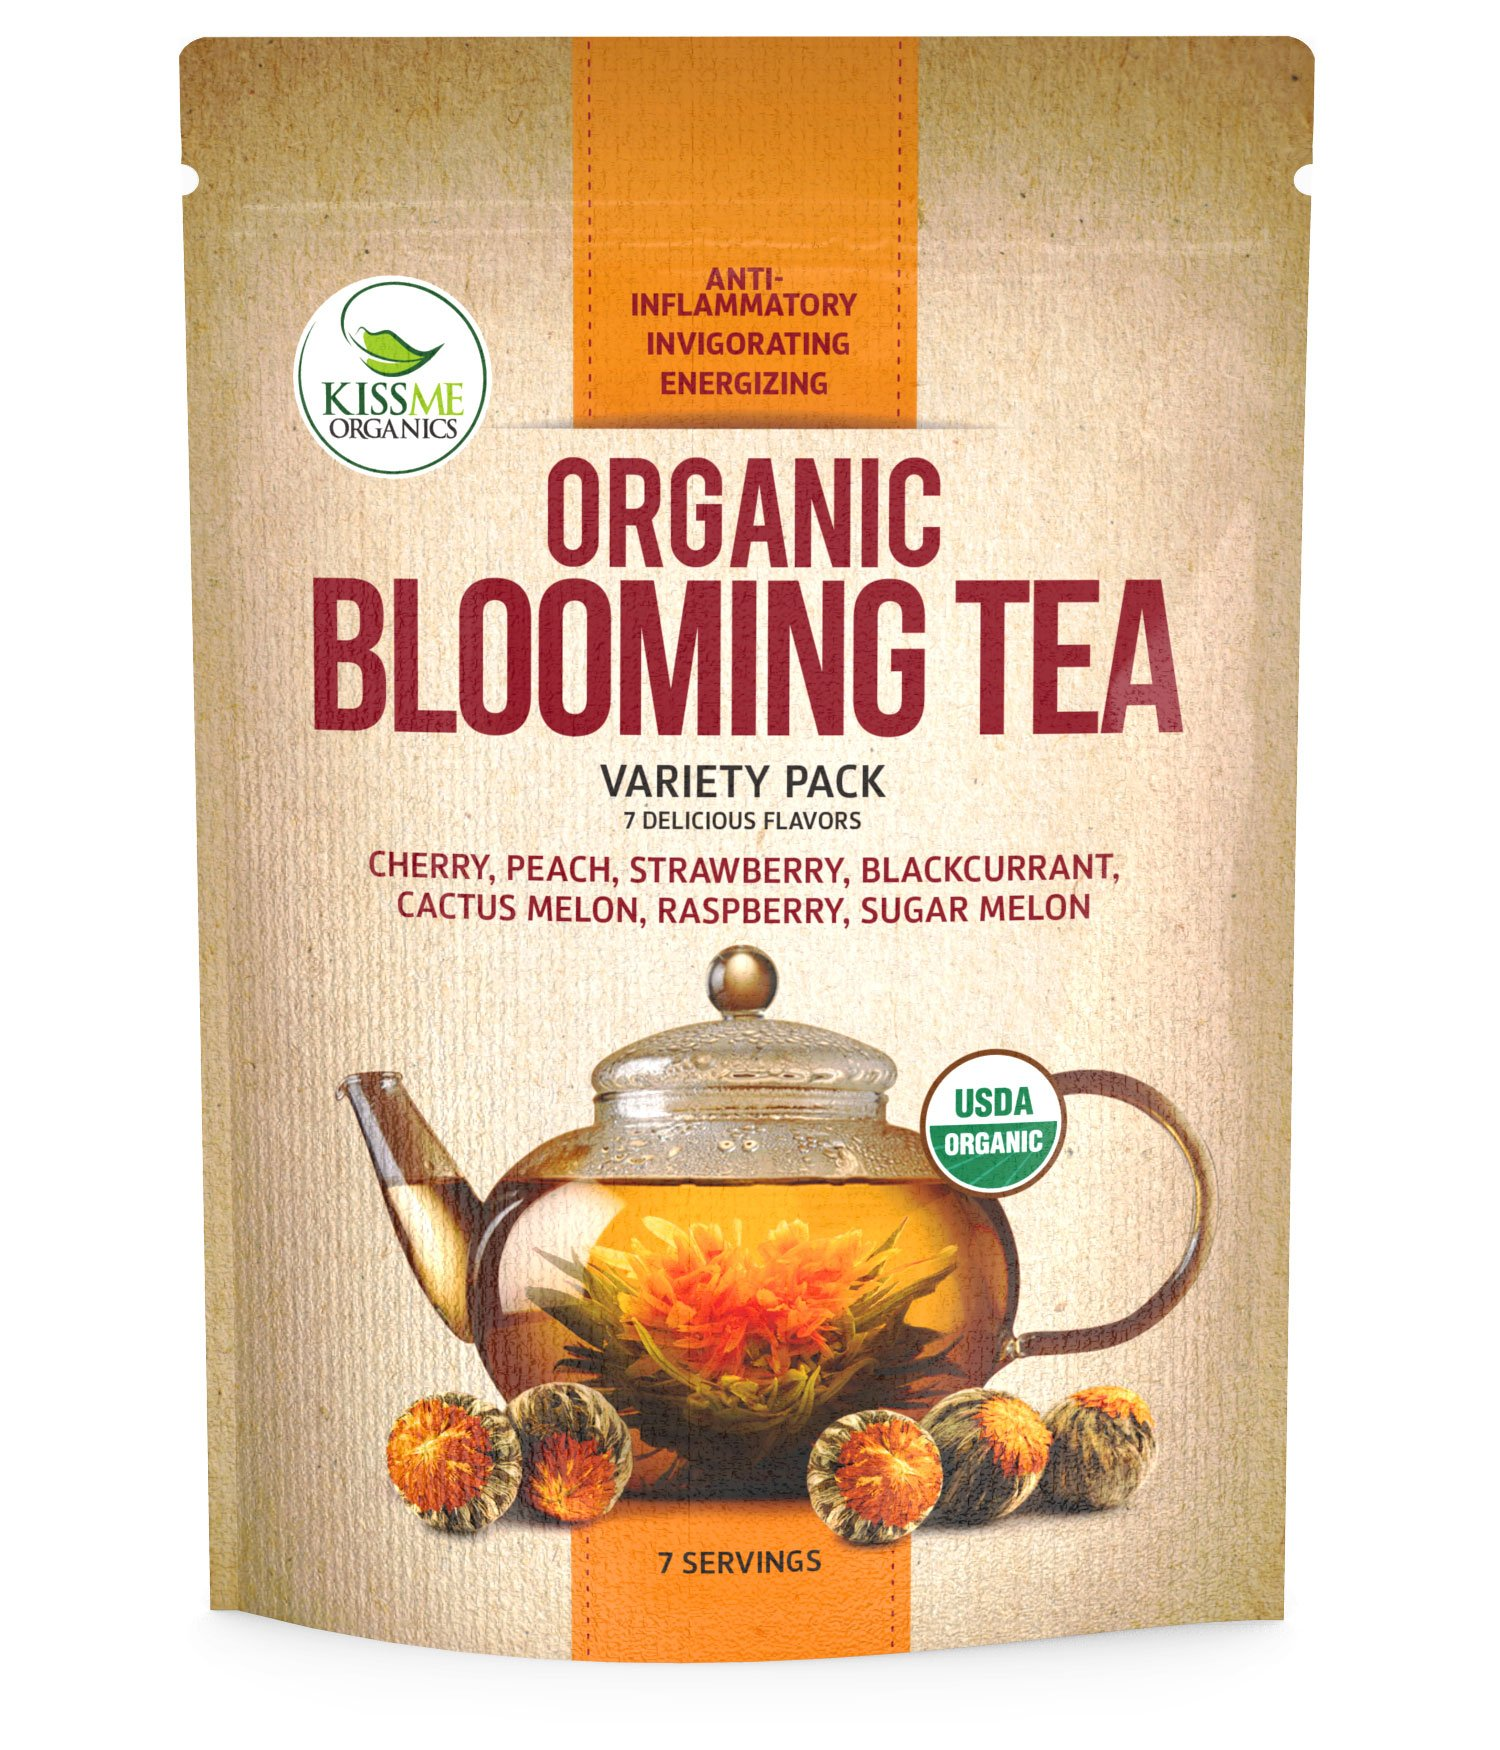 Blooming Tea - 7 Organic All Natural Flavors of Flowering Tea - 100% Organic Calendula Flowers and Green Tea Leaves in Hand Sewn Blooming Tea Balls from Kiss Me Organics - 7 Blooms - One of Each